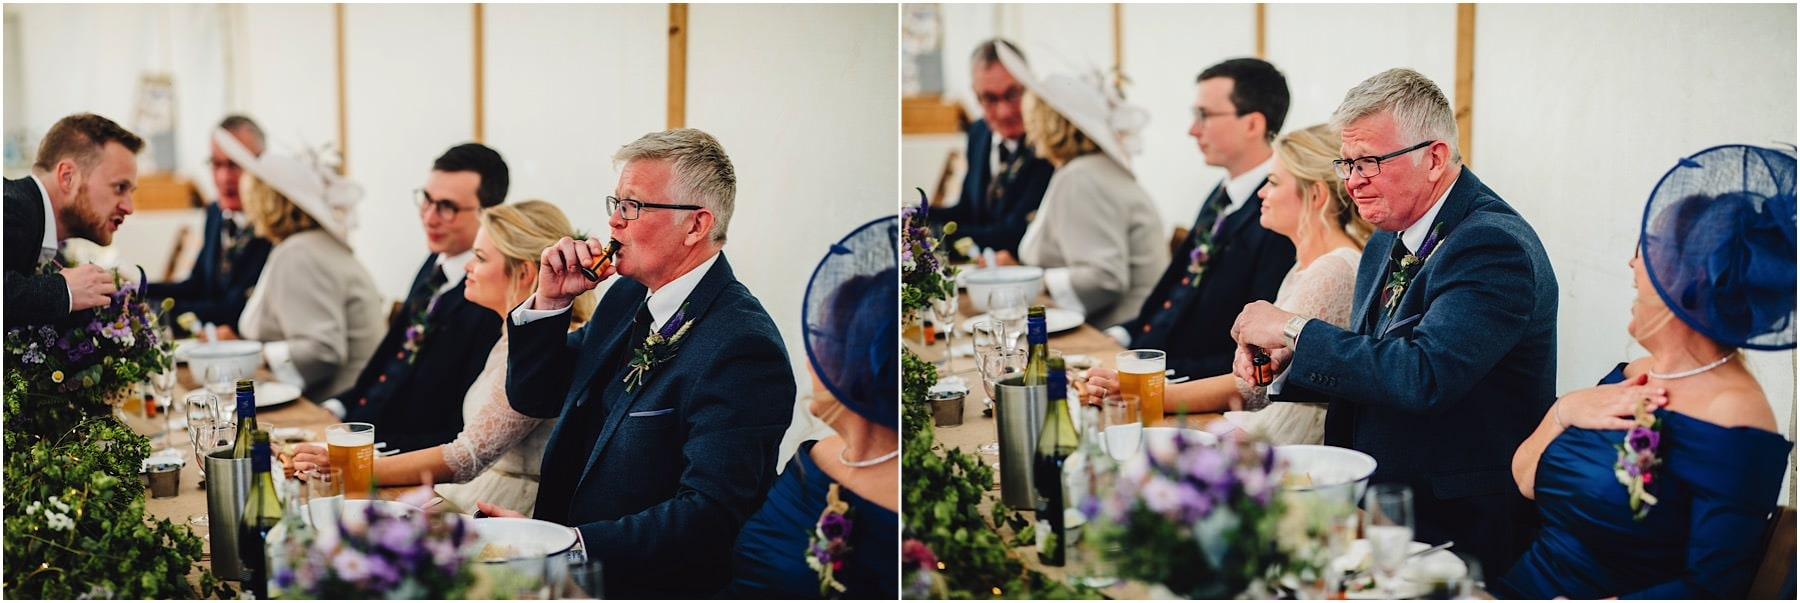 father of the bride having a drink